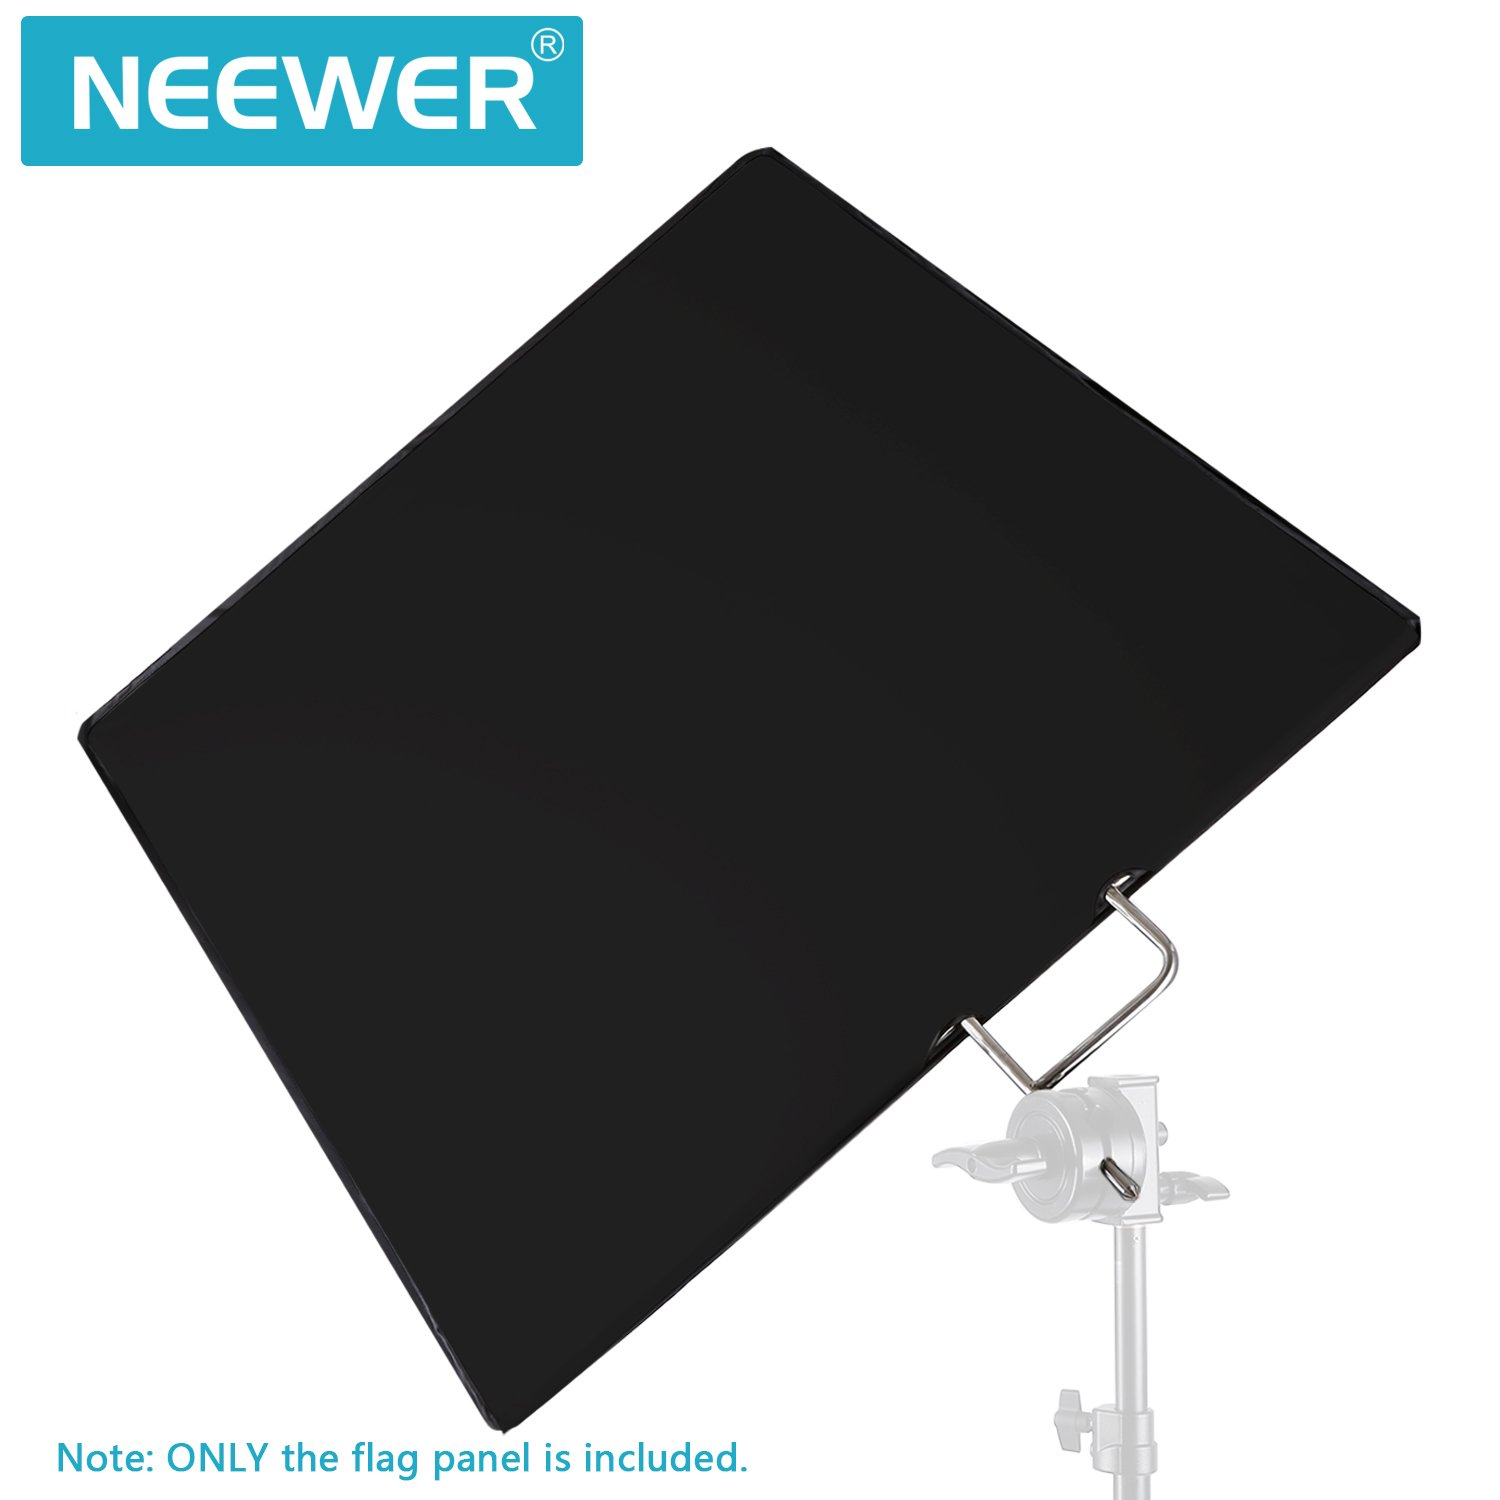 Neewer 30x36 inches 4-in-1 Metal Flag Panel Set Reflector with Soft White, Black, Silver and Gold Cover Cloth for Photo Video Studio Photography by Neewer (Image #2)